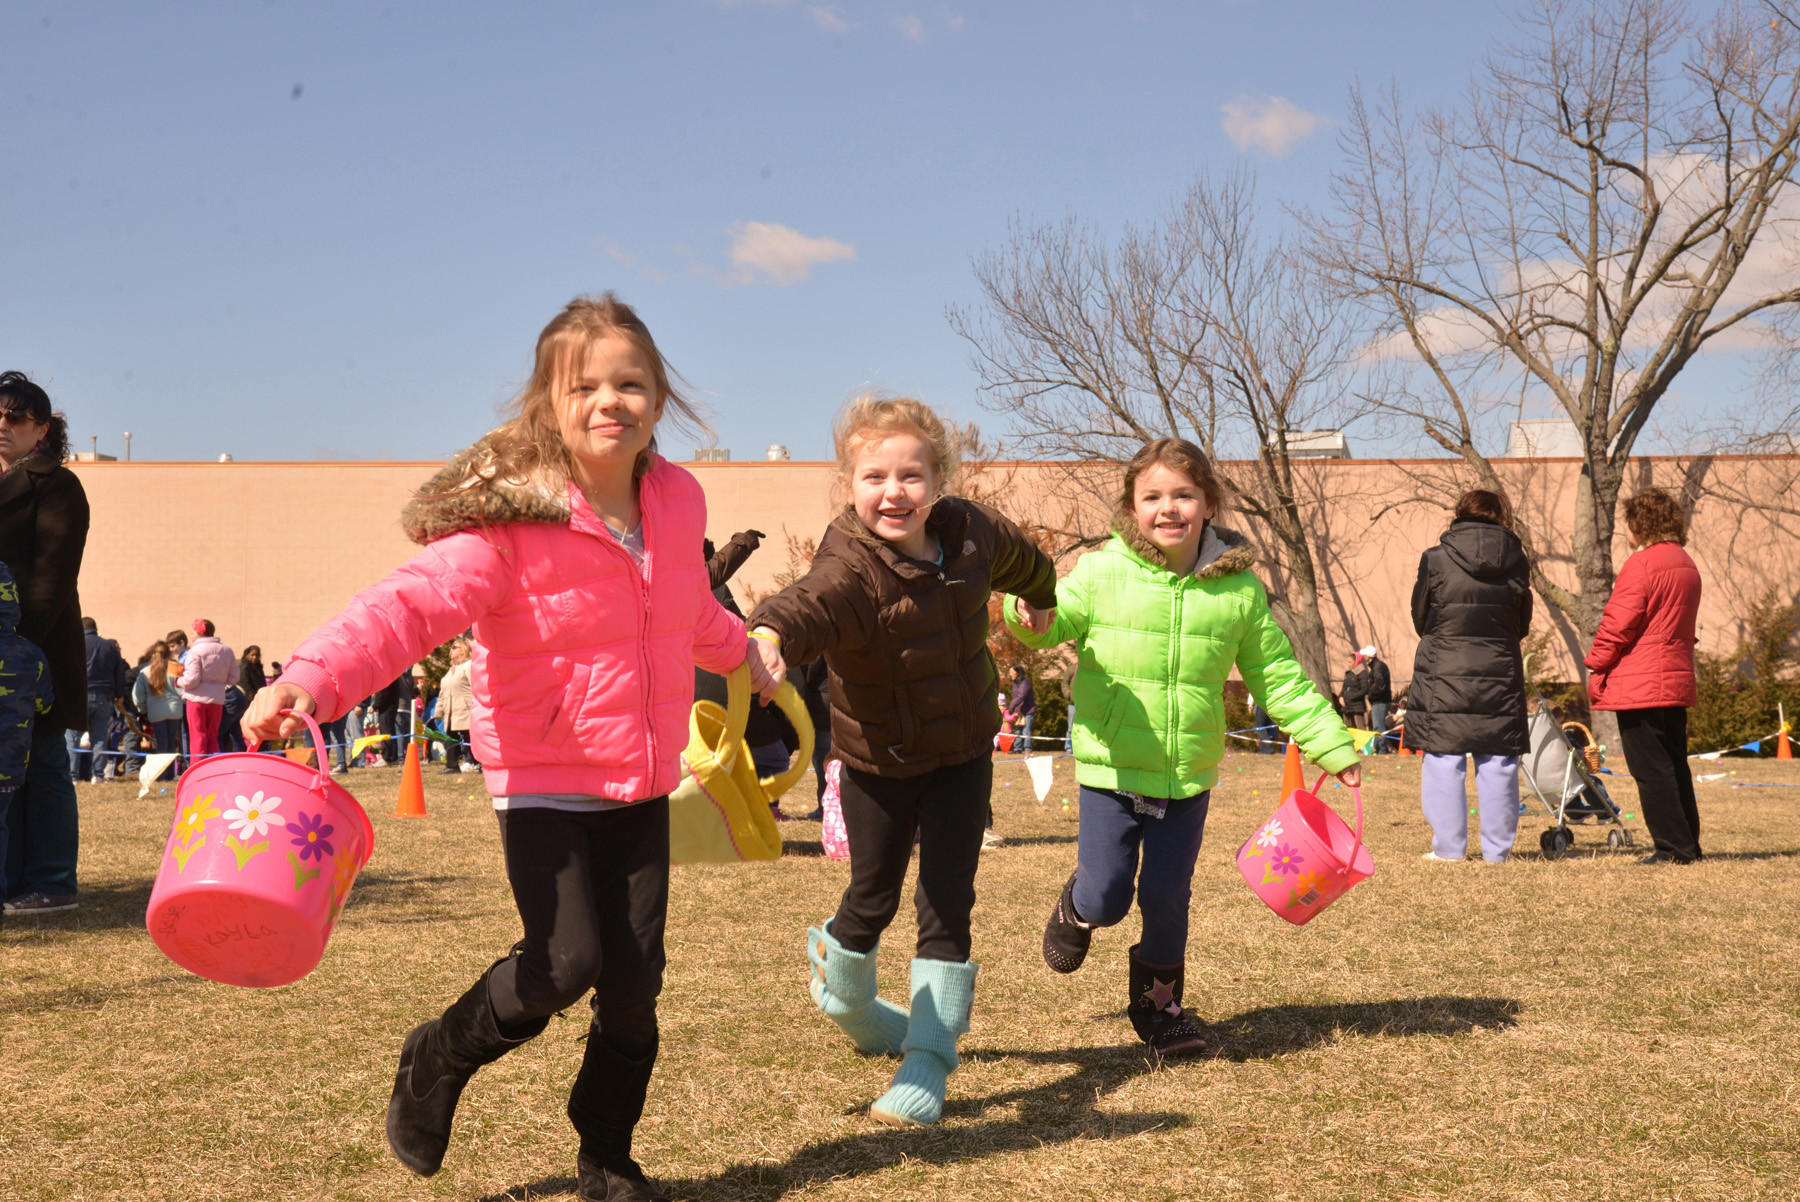 Kayla Bregel 8, Tara Steiger 6, and Lauren Bregel, 5, got off to a fast start during the Easter egg hunt at Schoolhouse Green in Oceanside last Saturday. Story, more pictures, page 11.